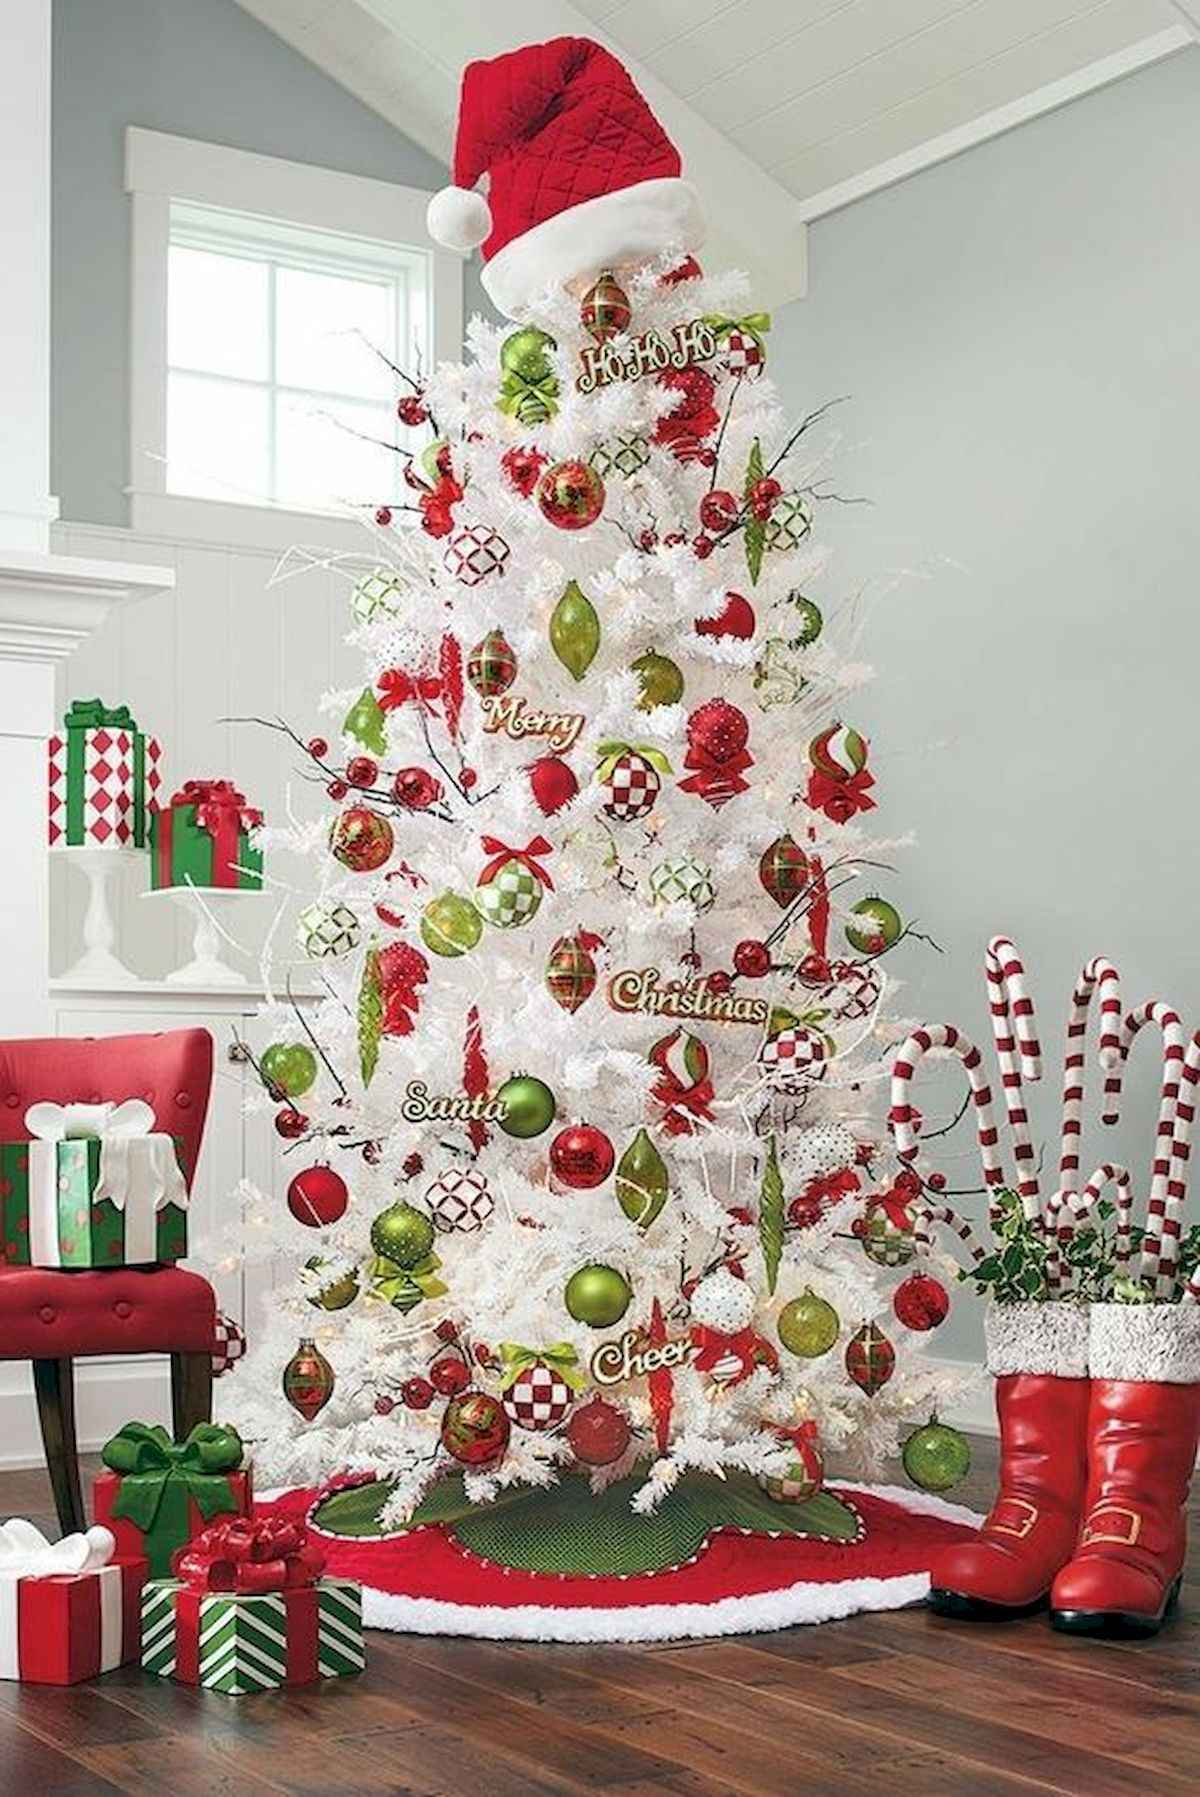 60 awesome christmas tree decorations ideas (40)